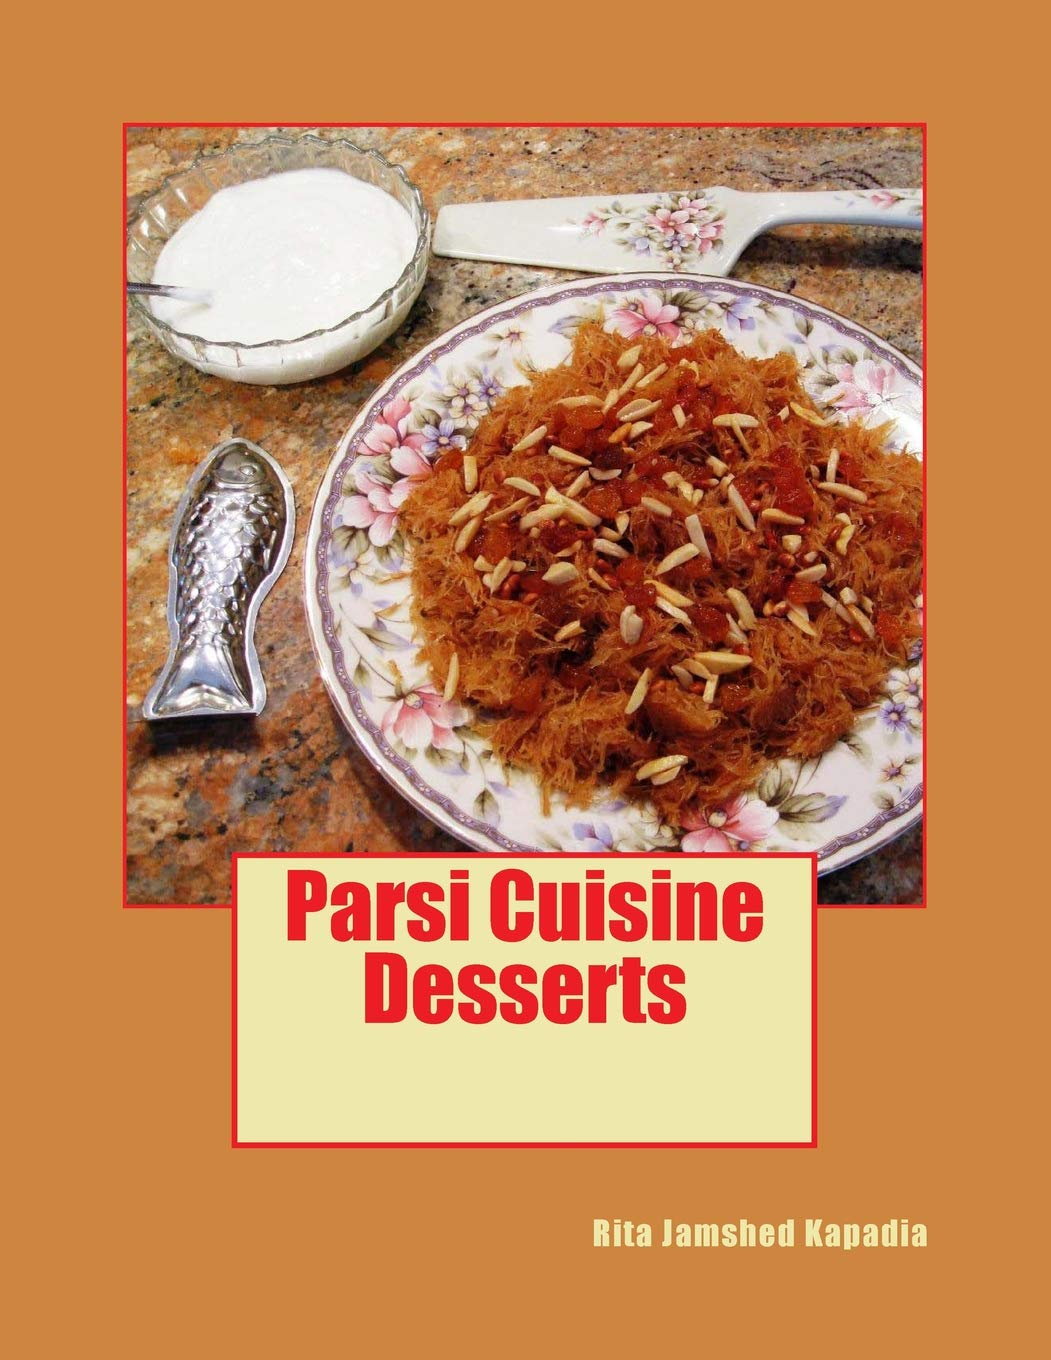 Desserts: Sweet and Savory Desserts, Breakfast and Snack recipes Sweet and Savory Desserts, Breakfast and Snack recipes are featured in this volume. Indian Parsi Customs, Traditions and historical background is given wherever appropriate.  Sev, Dudh ni Sev, Malido, Bhakhra, Nankhatai, Parsi Popatji / Popatjee, (Dutch c